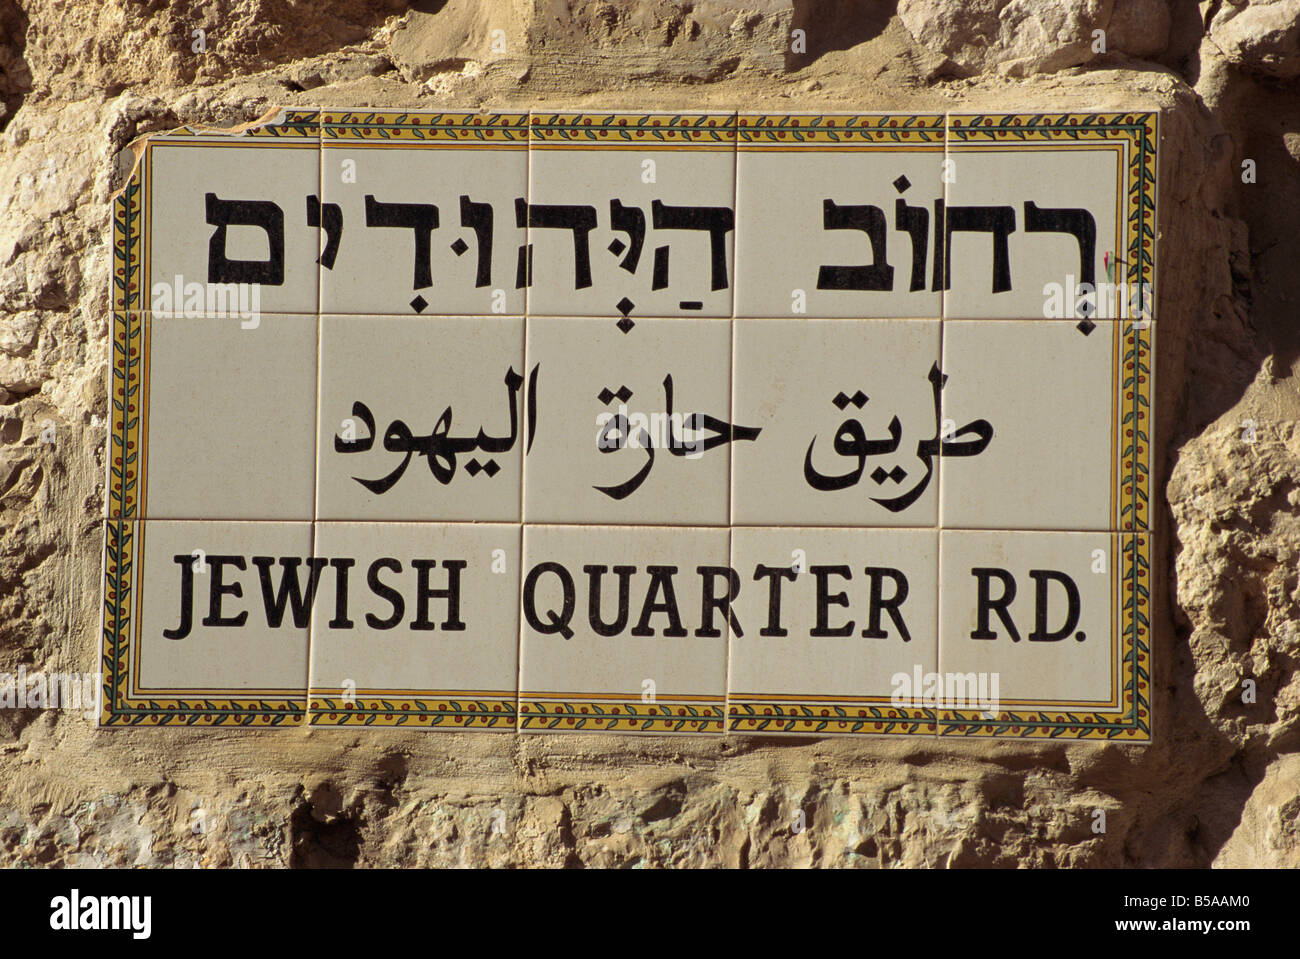 Close-up of street sign, Hebrew, Arabic and English, in the Jewish Quarter of the Old City of Jerusalem, Israel - Stock Image